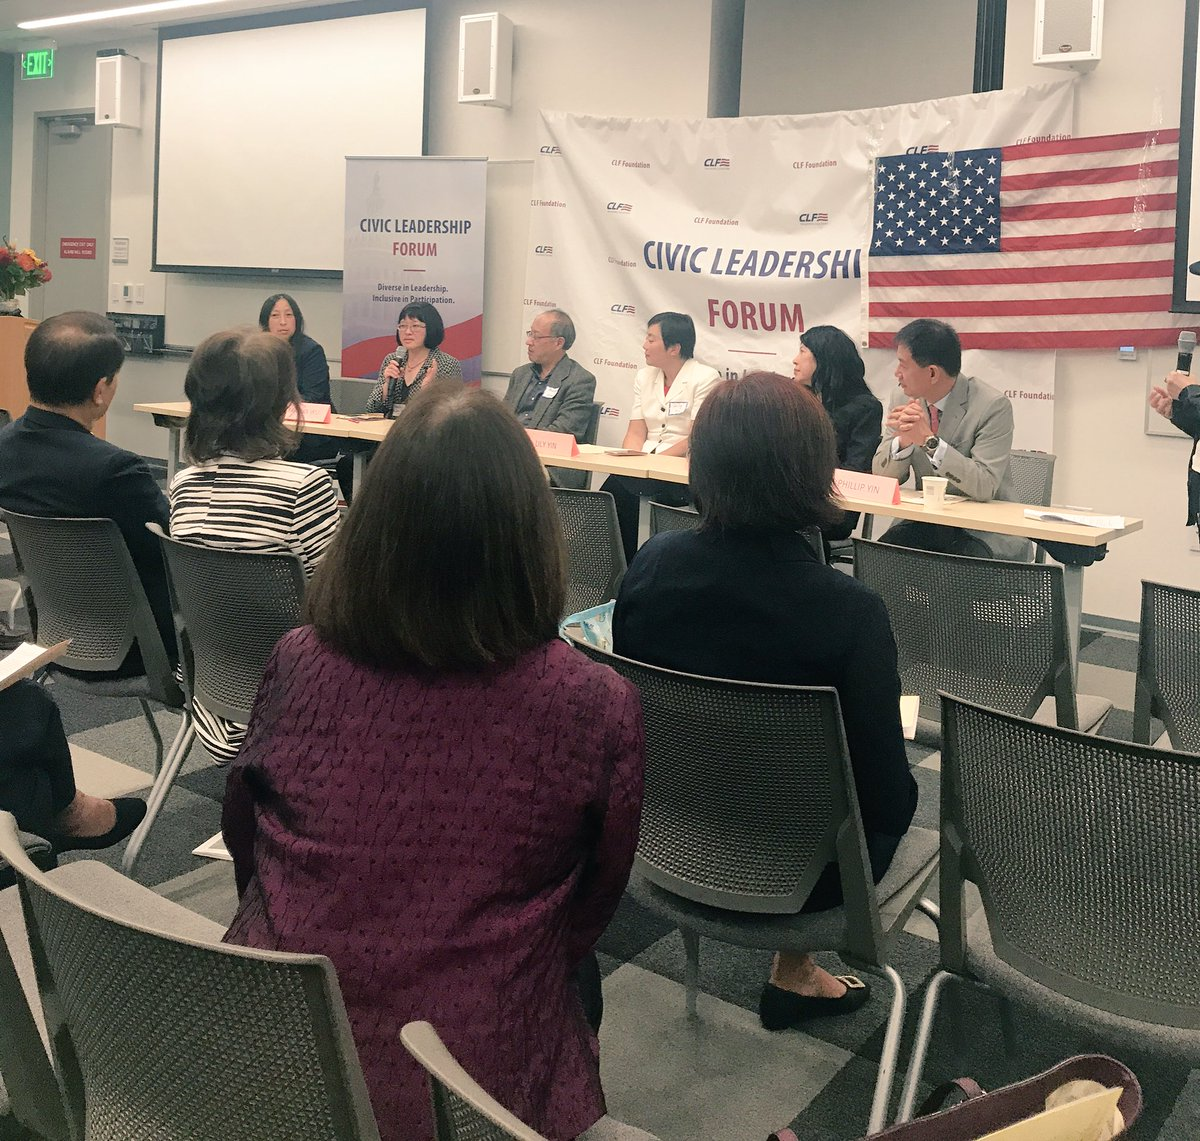 WA Chinese Community Coalition is holding this wonderful Civic Leadership Forum in #Redmond! #CityCouncil #civic #Leadership<br>http://pic.twitter.com/gX7WeUi6GW